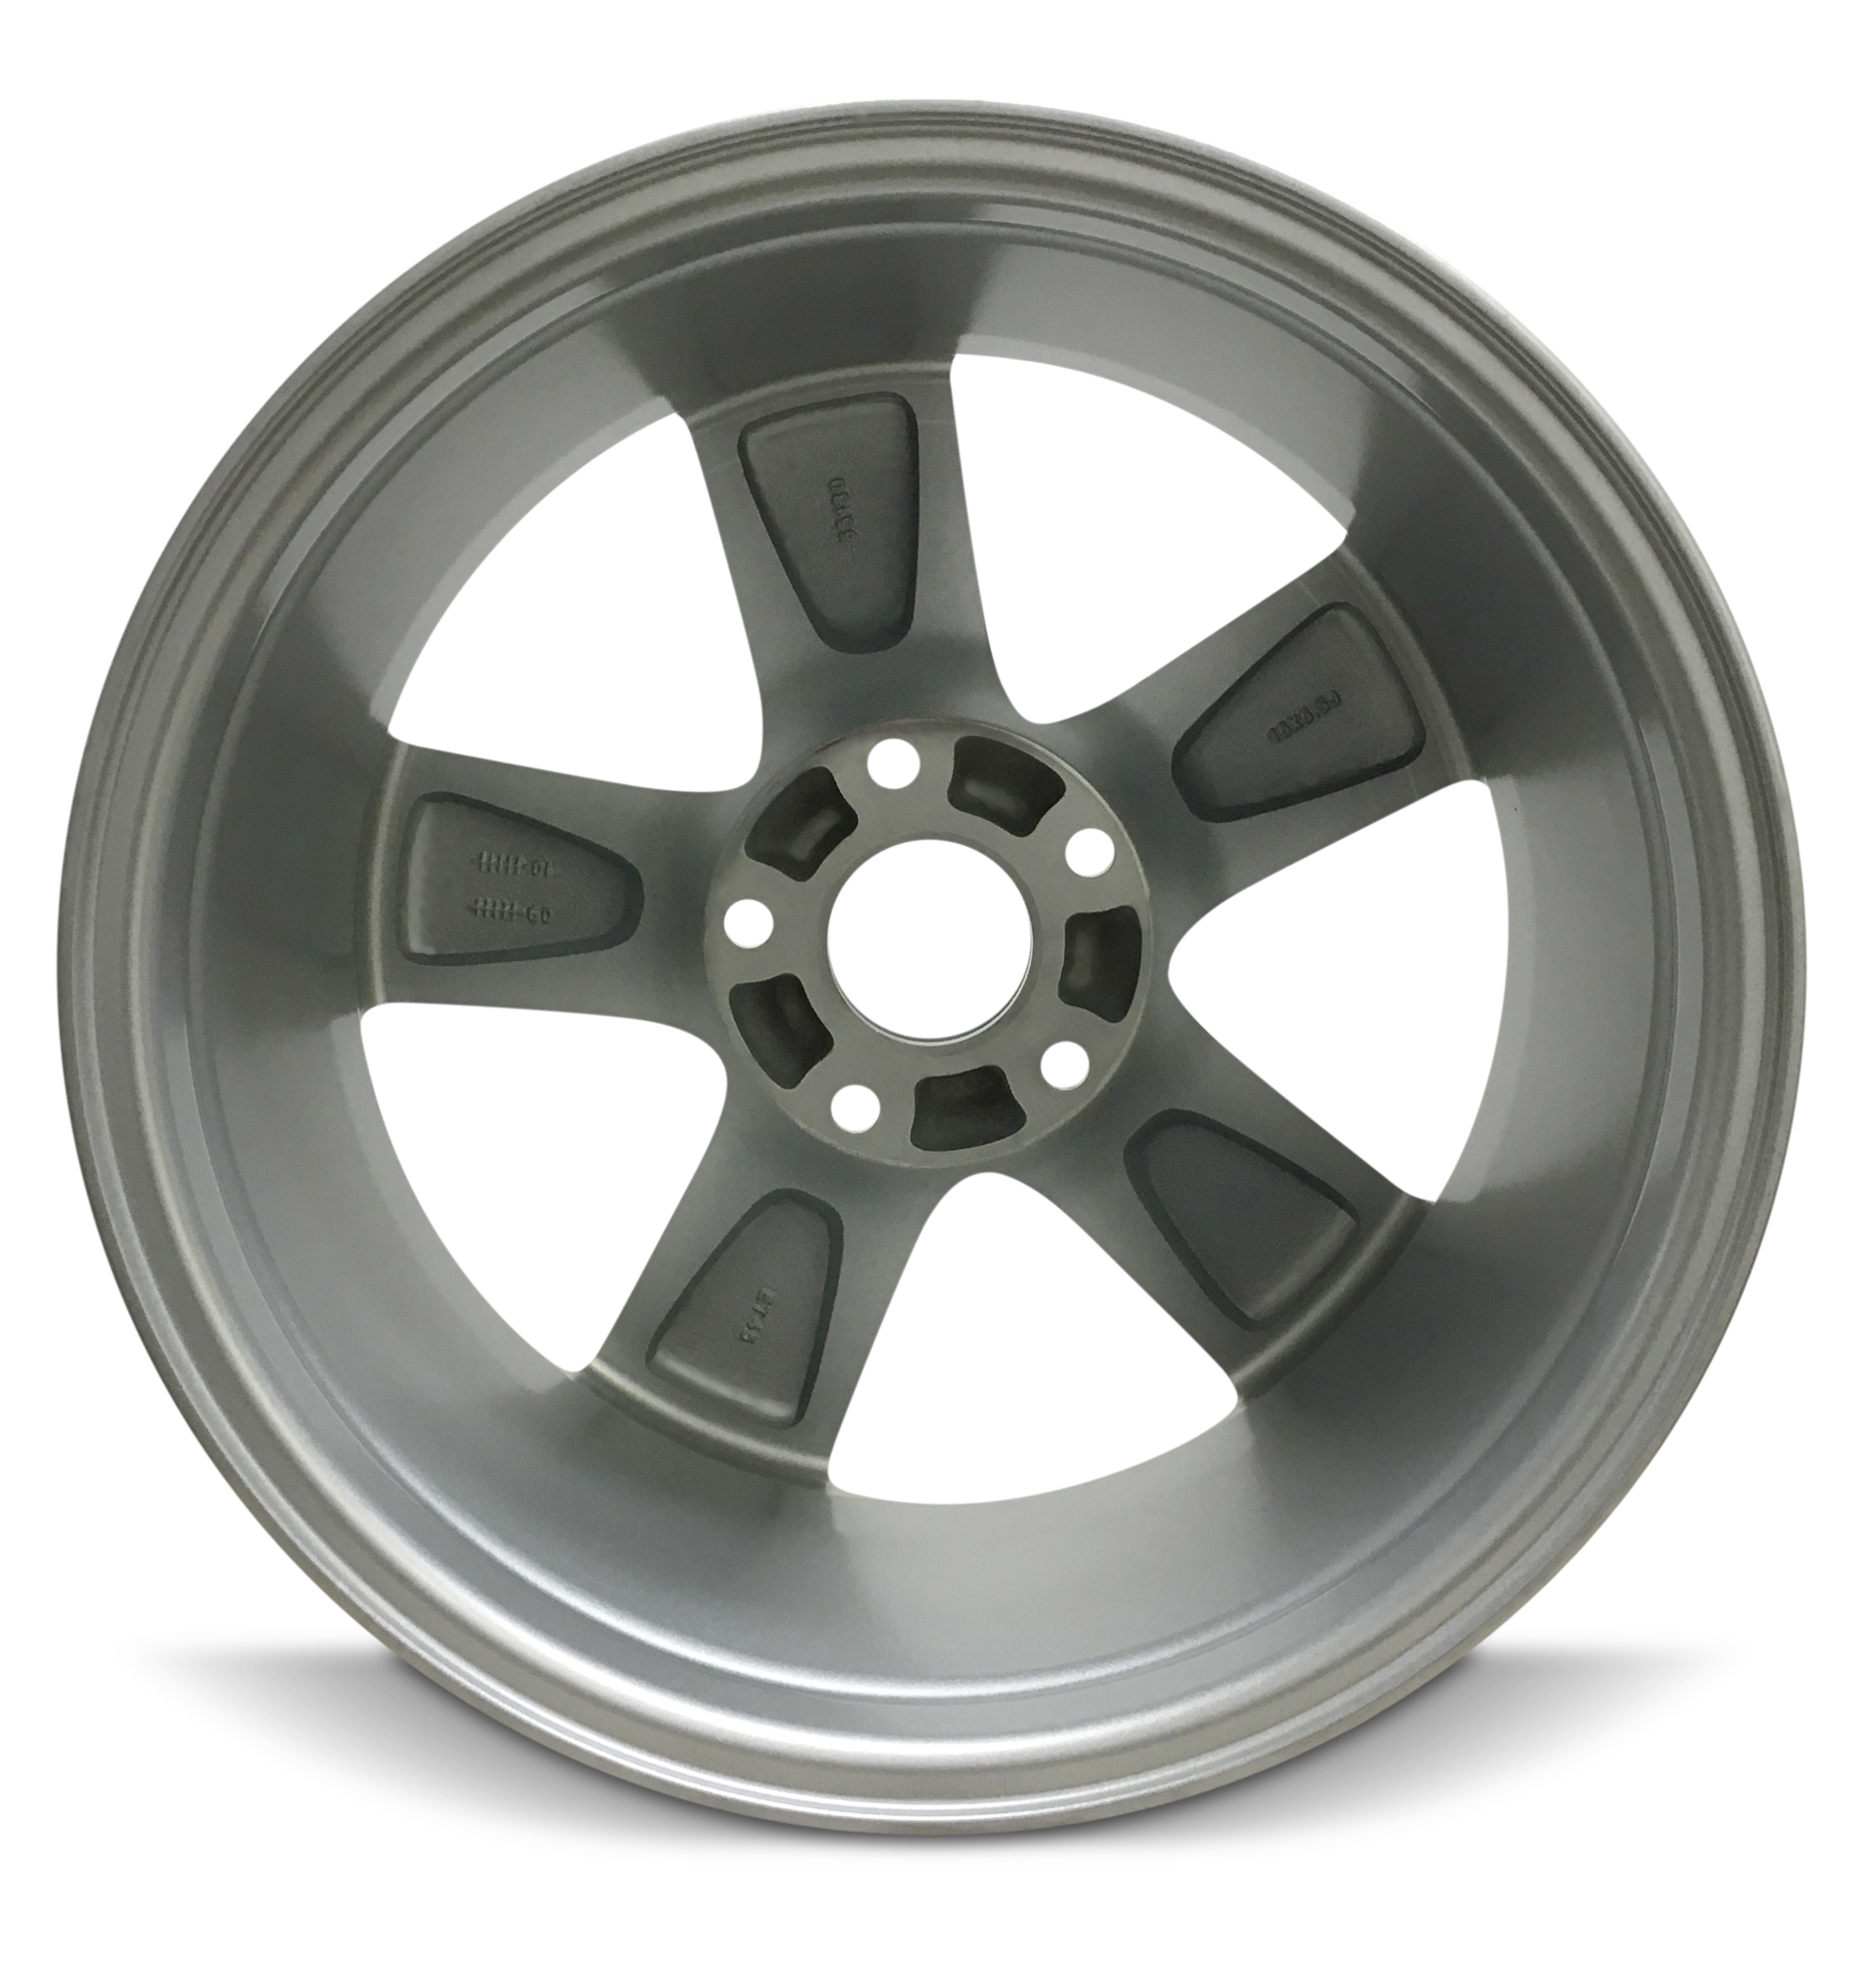 New 16x6 5 Inch 5 Lug 2006 2011 Honda Civic Alloy Wheel